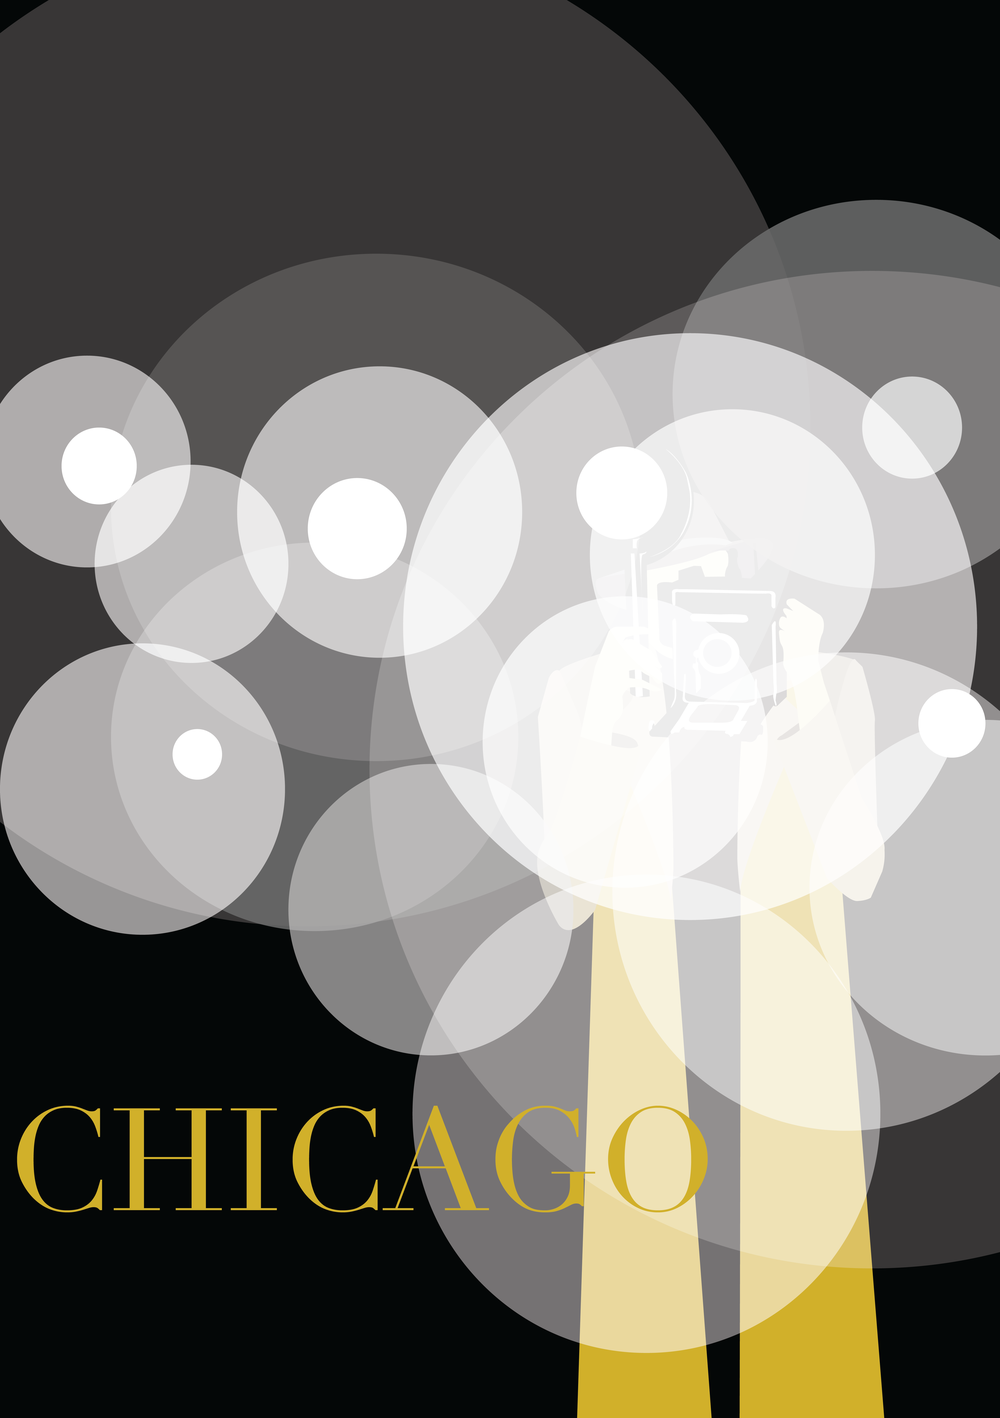 chicago-gd-gold-01.png